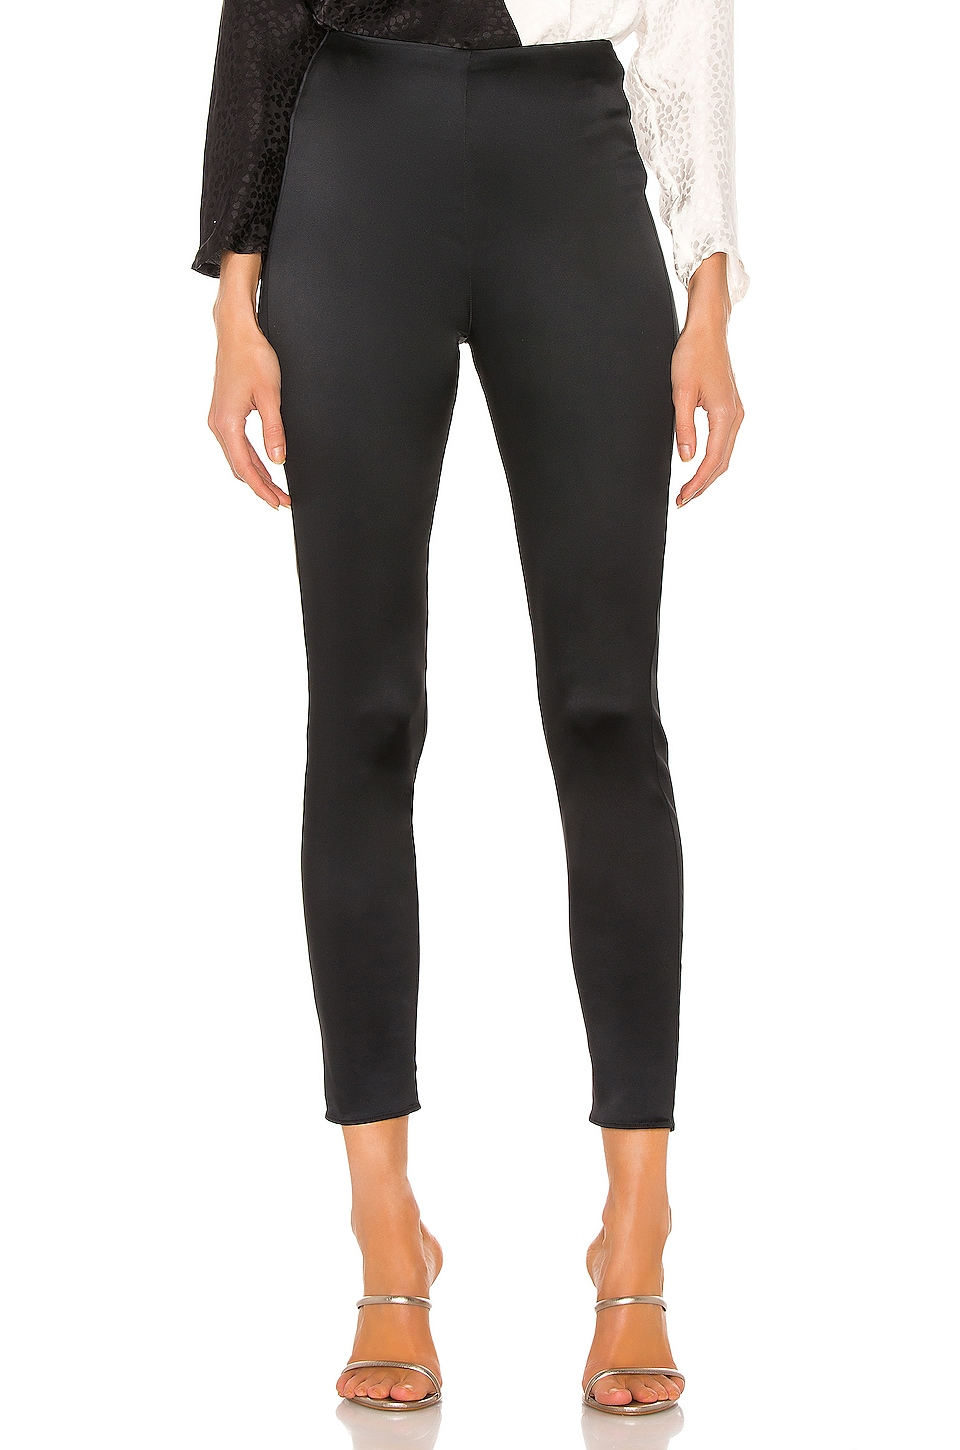 L'AGENCE Arrow Pant in Black